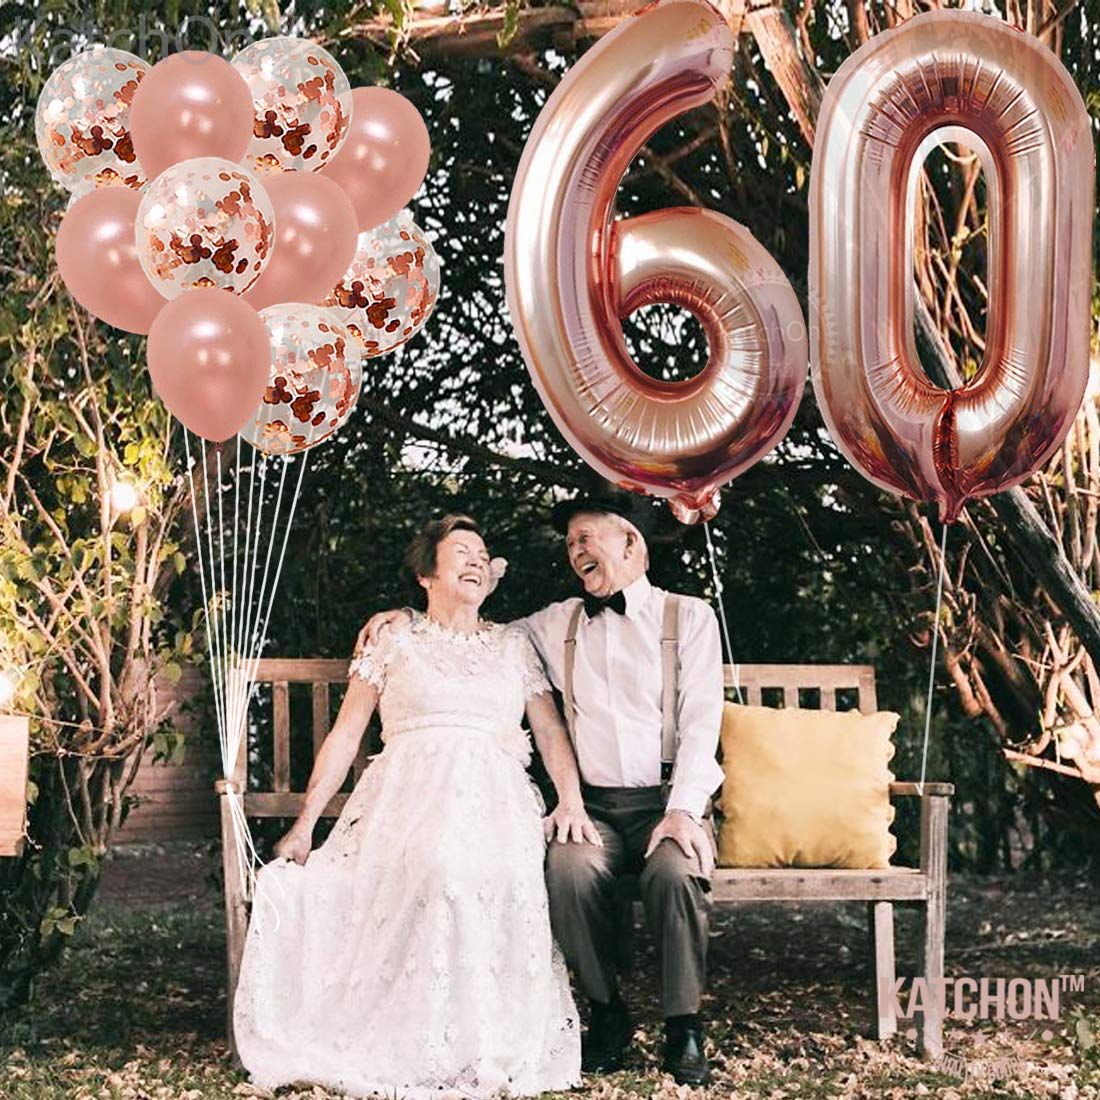 40 Inch Large 6 and 0 Mylar Rose Gold Balloons 12 Inch Rose Gold 60 Number Balloons Extra Pack of 10 Latex Baloons Great 60th Birthday Party Decorations| 60 Year Old Rose Gold Party Supplies KatchOn